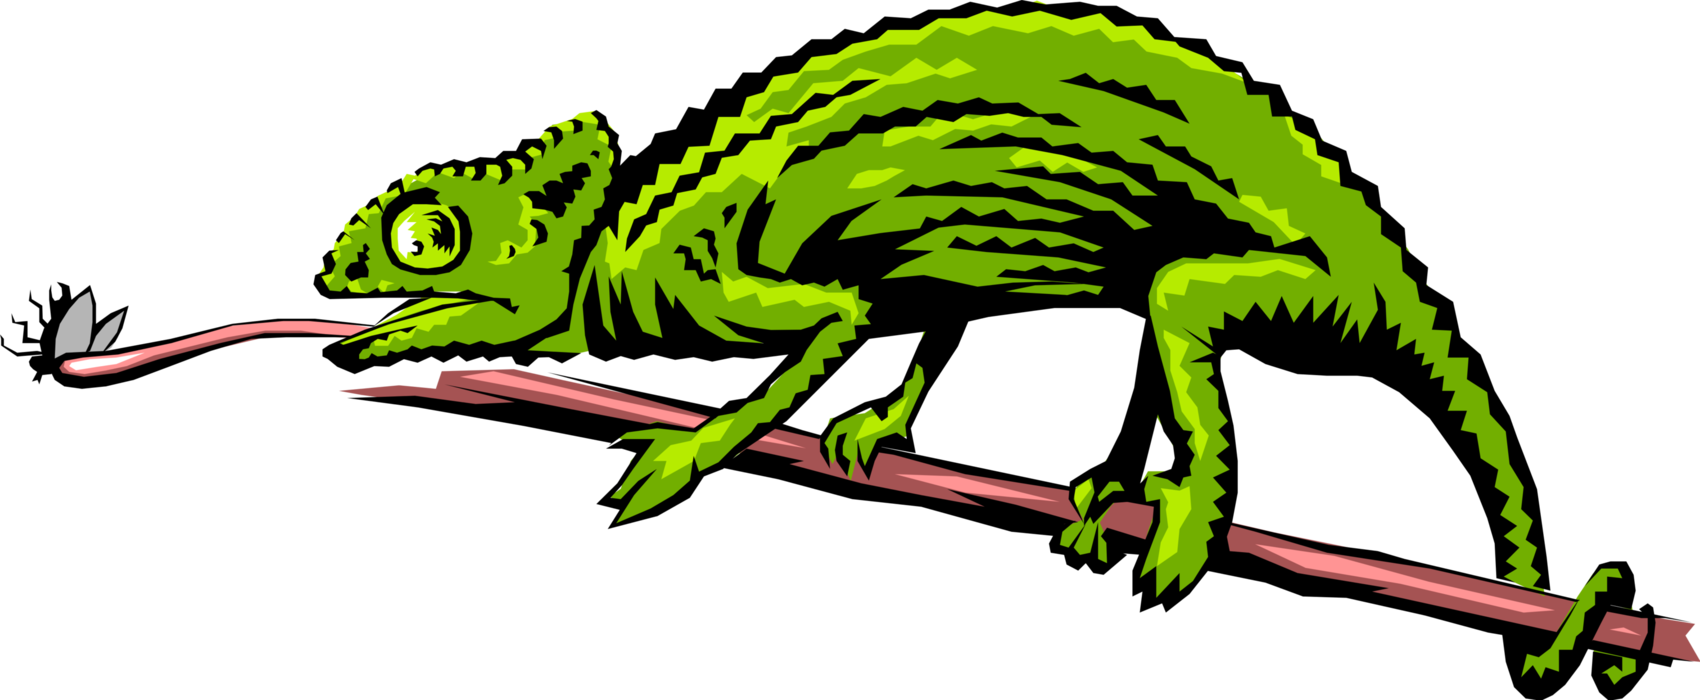 Vector Illustration of Chameleon Lizard Using Tongue to Catch Insect Meal